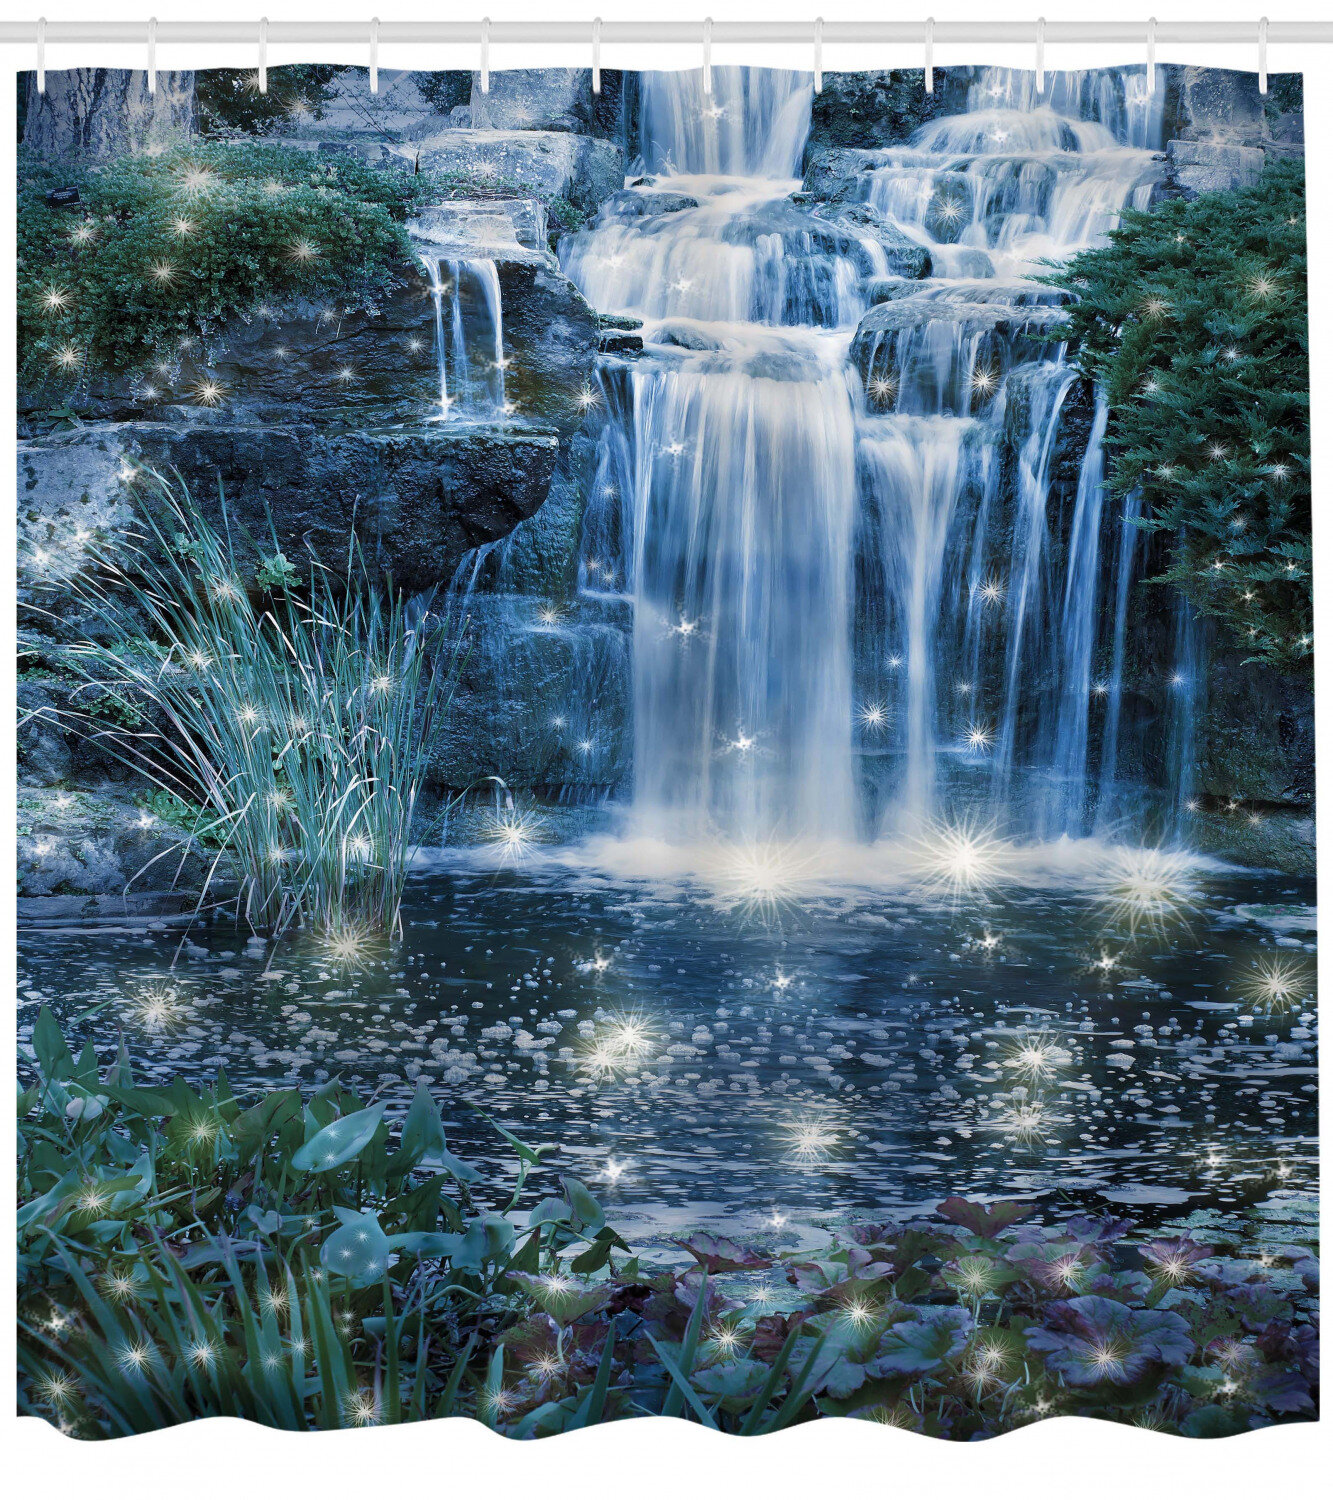 East Urban Home Waterfall Magic Fairy Cascade Shower Curtain Set Reviews Wayfair